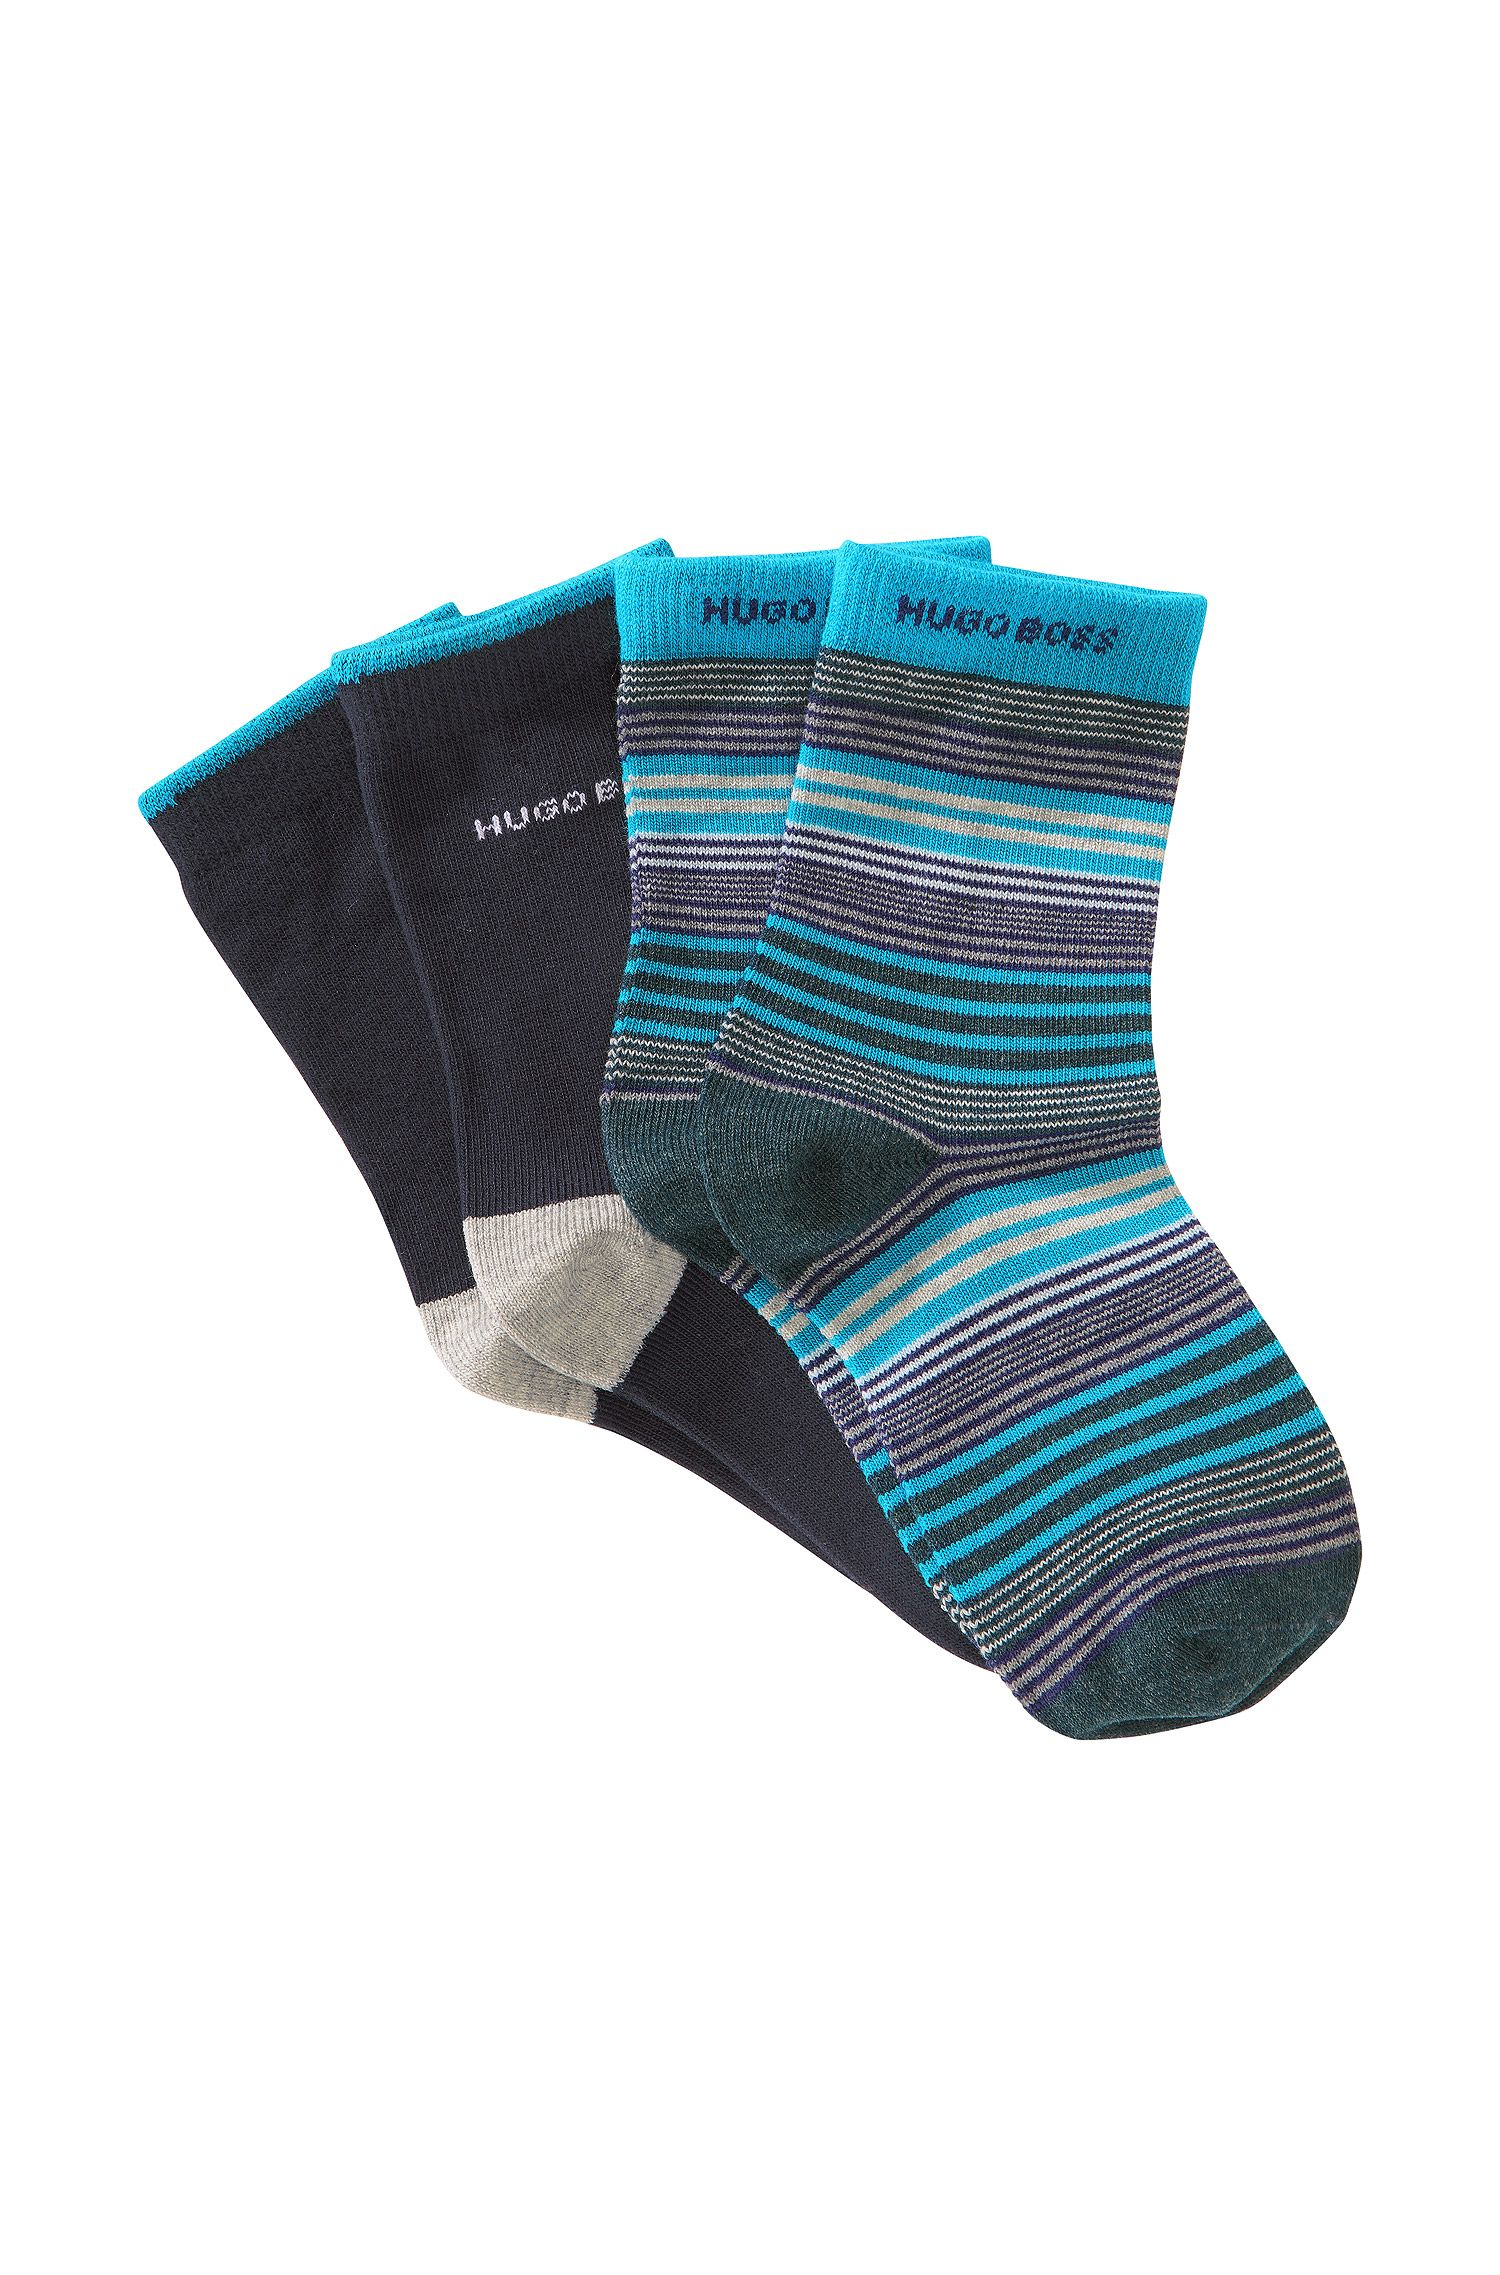 2er-Pack Kids-Socken ´J20145` aus Baumwollkomposition